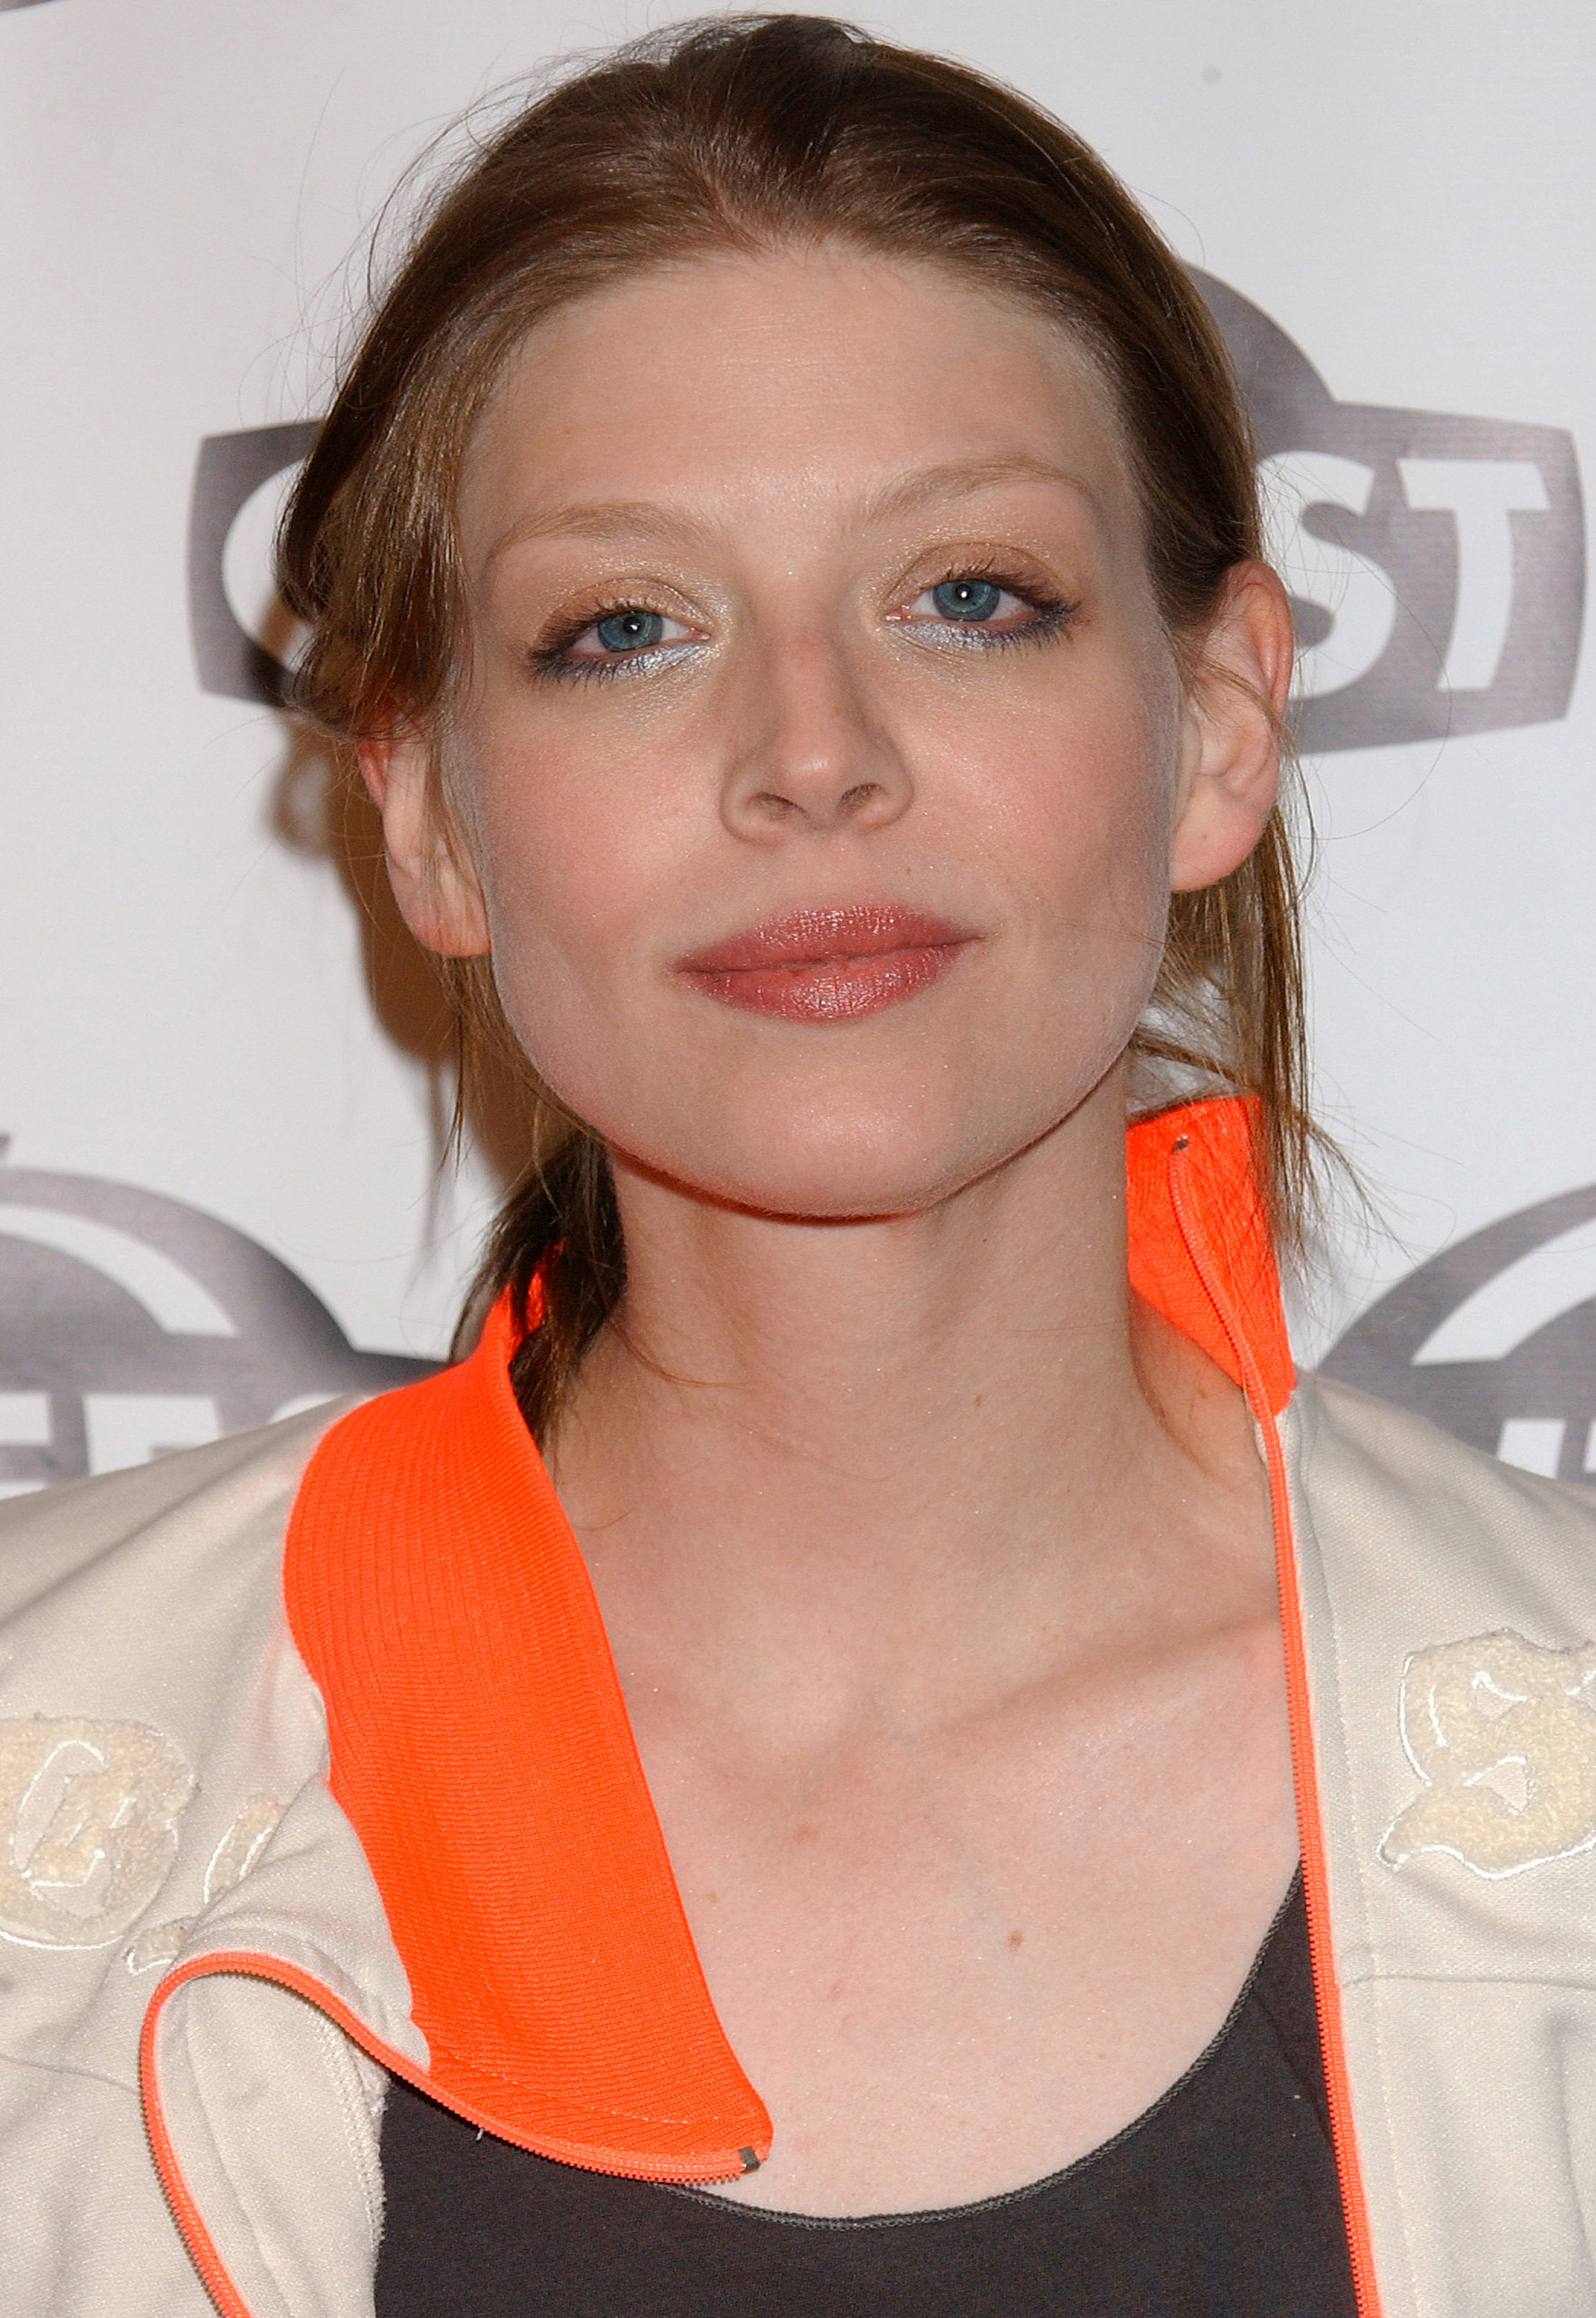 Amber Benson - Amber Benson Photo (25614248) - Fanpop